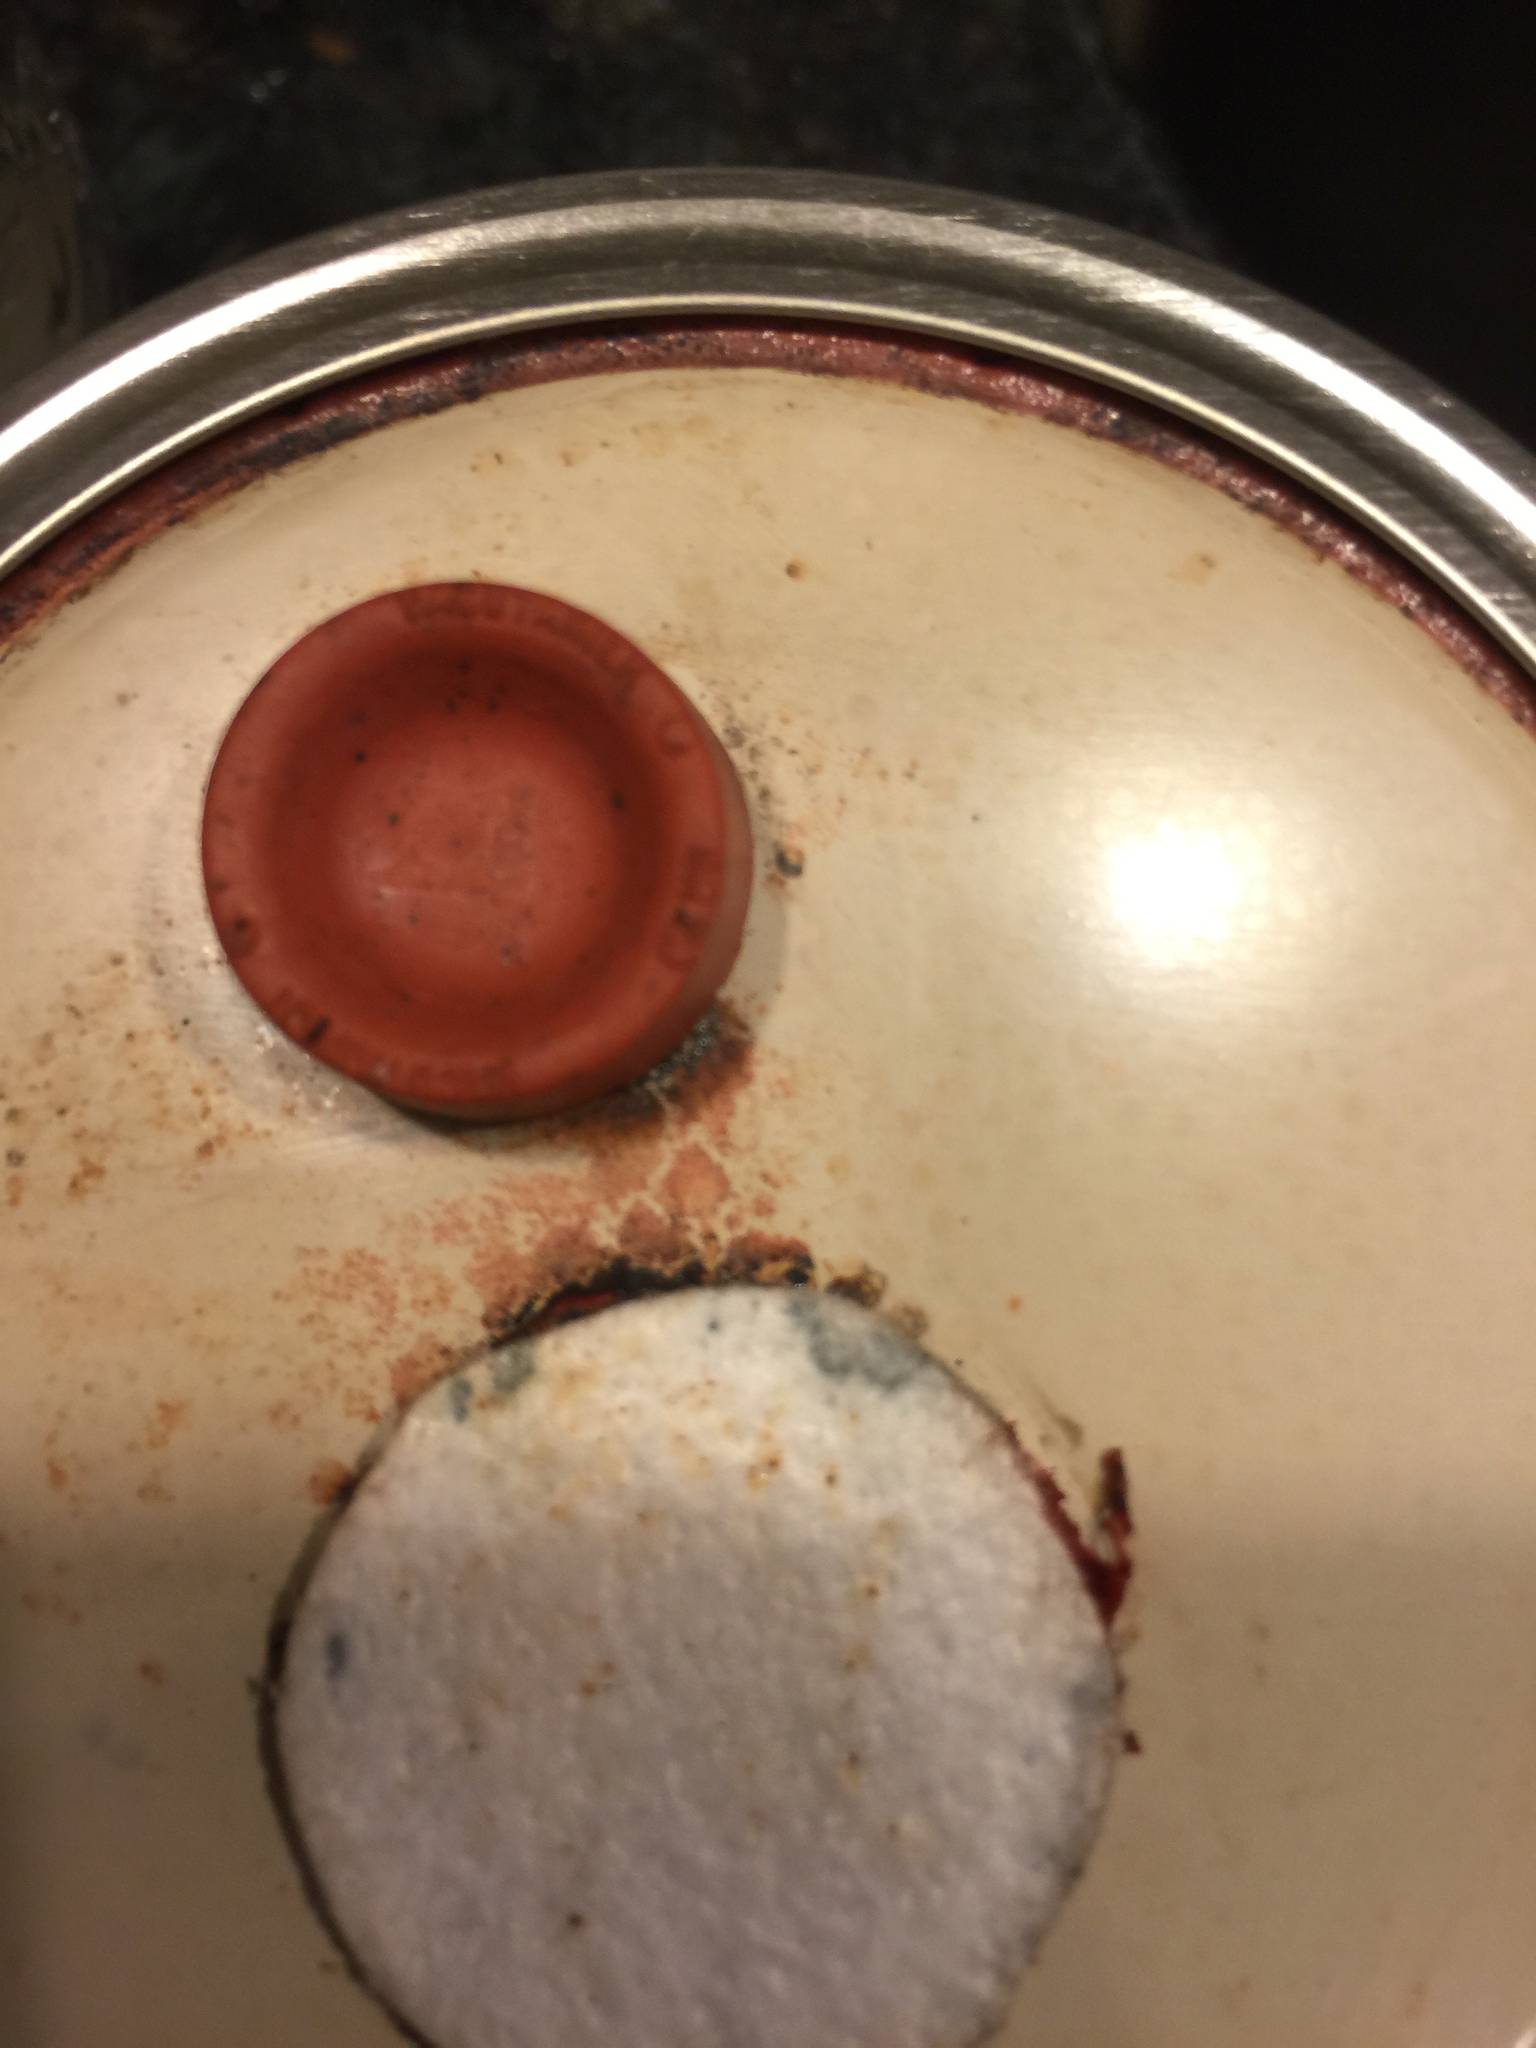 Black Residue Inside Canned Food